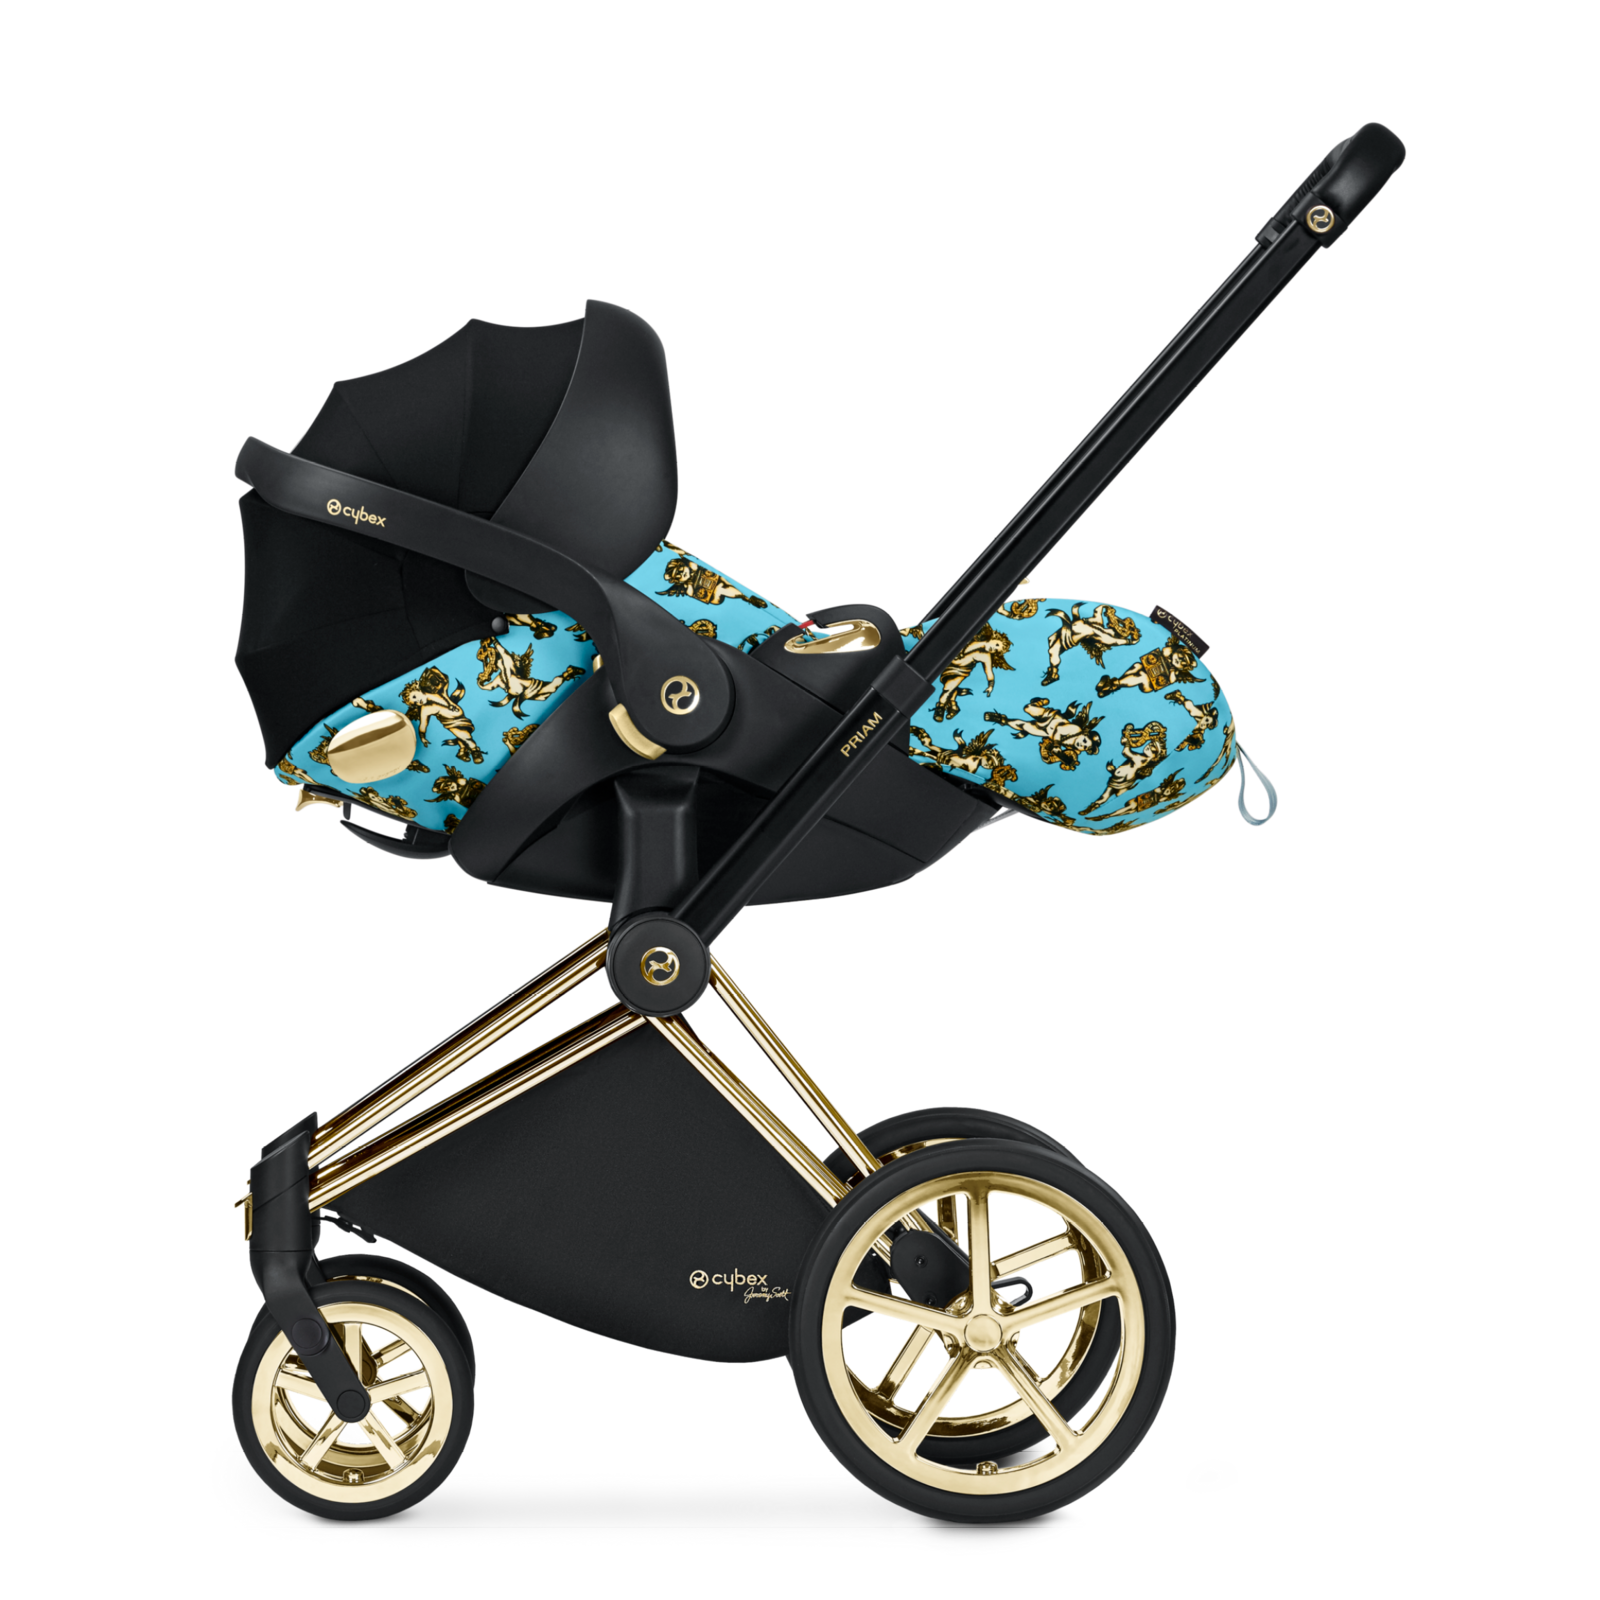 CYBEX by Jeremy Scott Cloud Q on PRIAM travel system